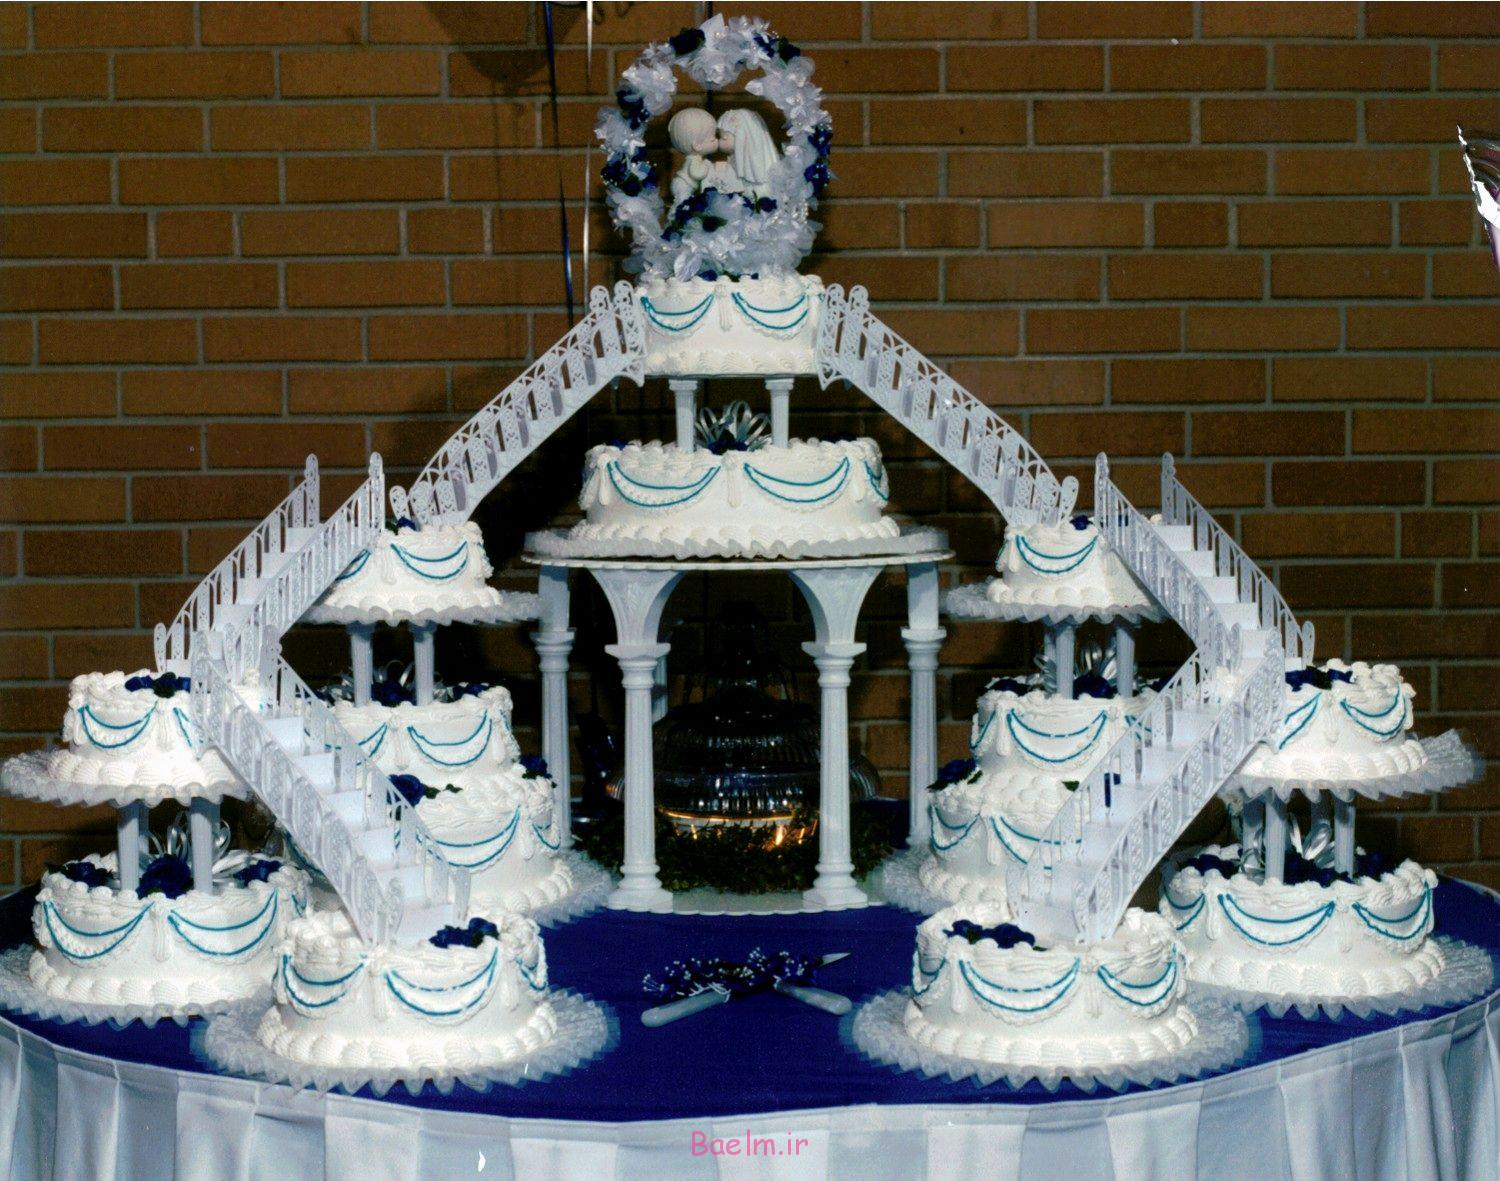 wedding-cakes-with-fountains-and-bridges-wedding-cakes-with-lights-and-fountains